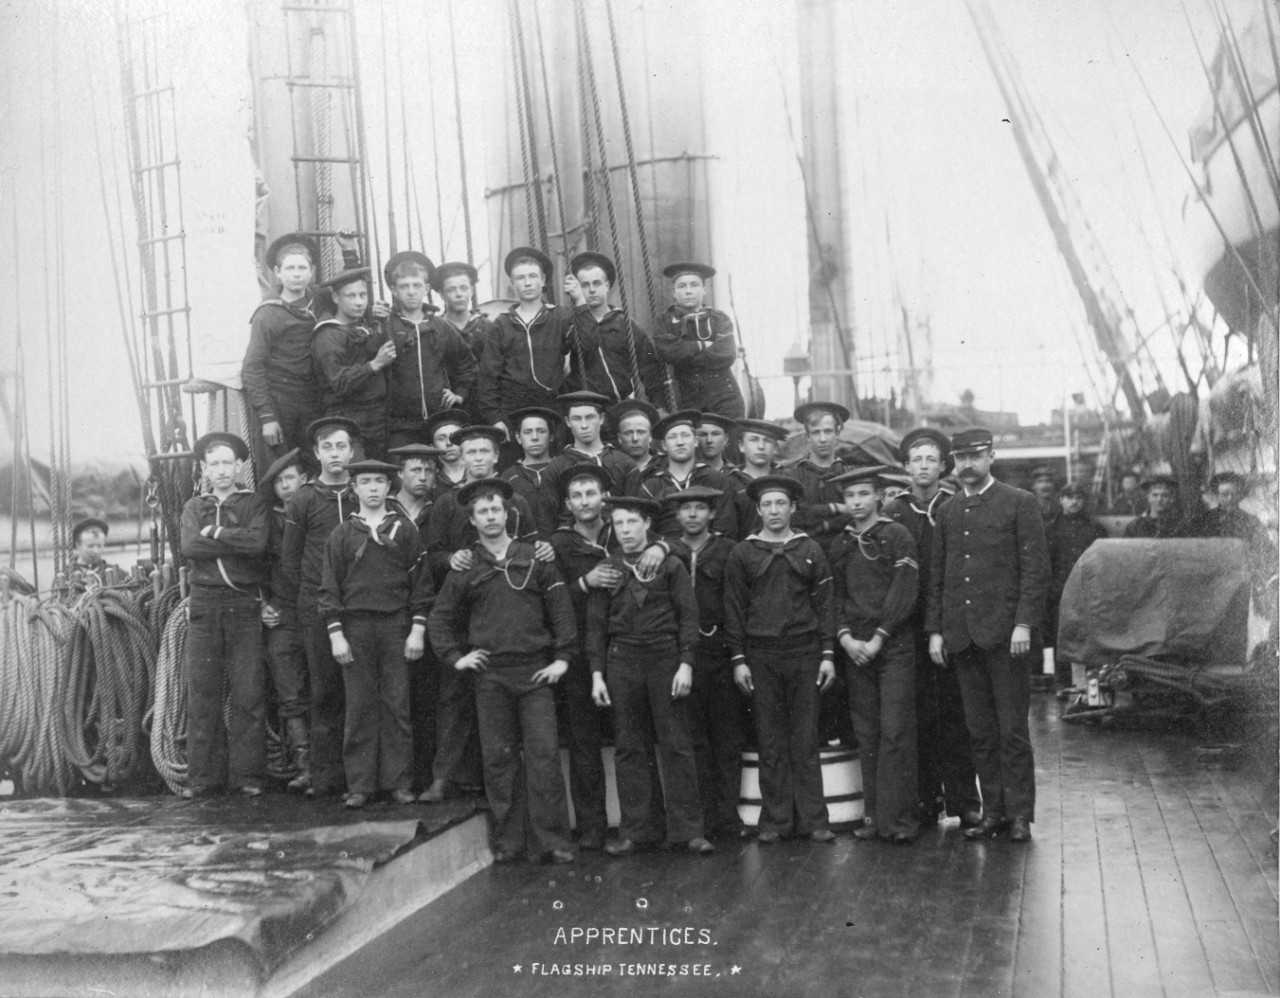 Scrapbook containing crew photos and scenes on board USS Tennessee, circa 1885. Identified individuals include Rear Admiral James Jouett, Midshipman John Ellicott, Captain Oscar Stanton, Passed Assistant Engineer Robert Milligan. Many photos have been assigned NH numbers.